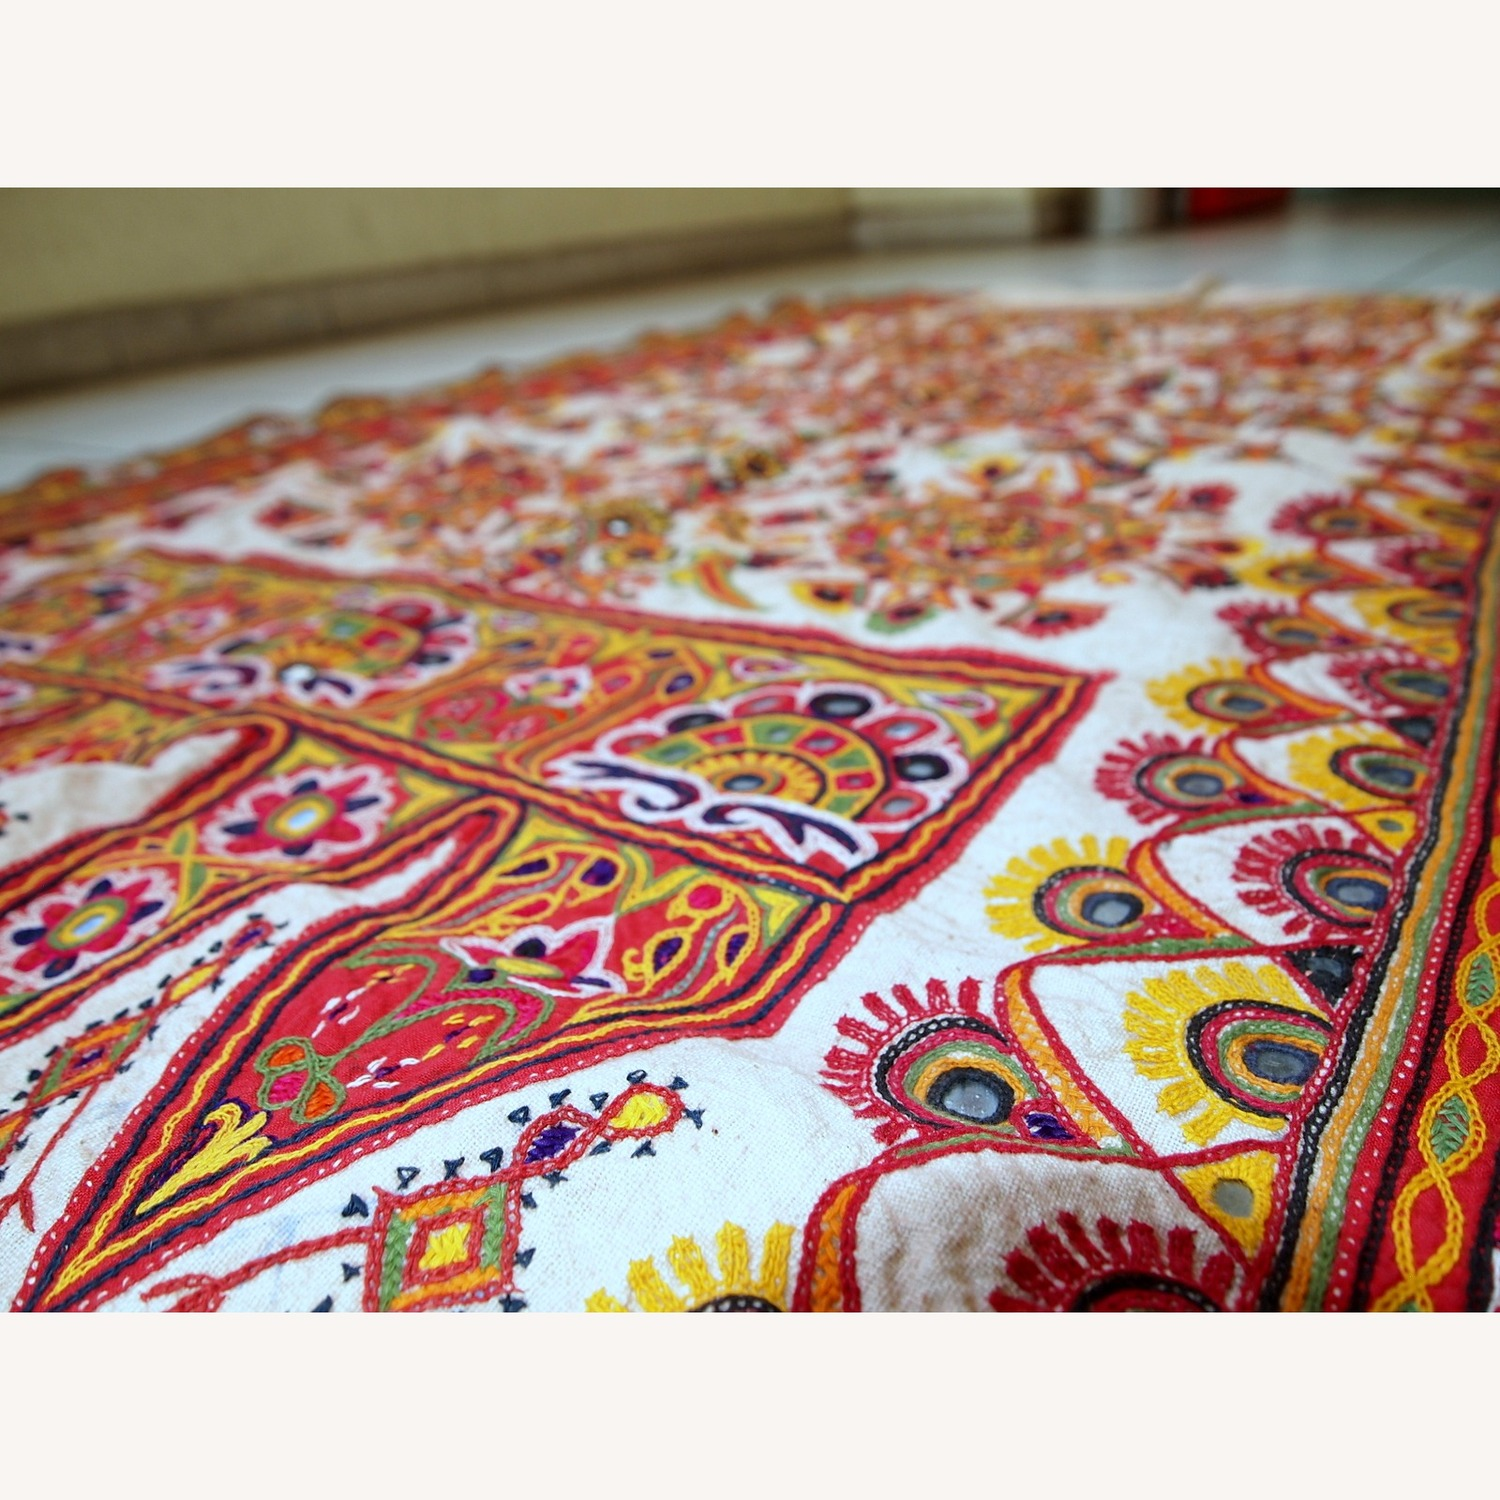 Handmade Indian Wall Hanging Embroidered Tapestry - image-8